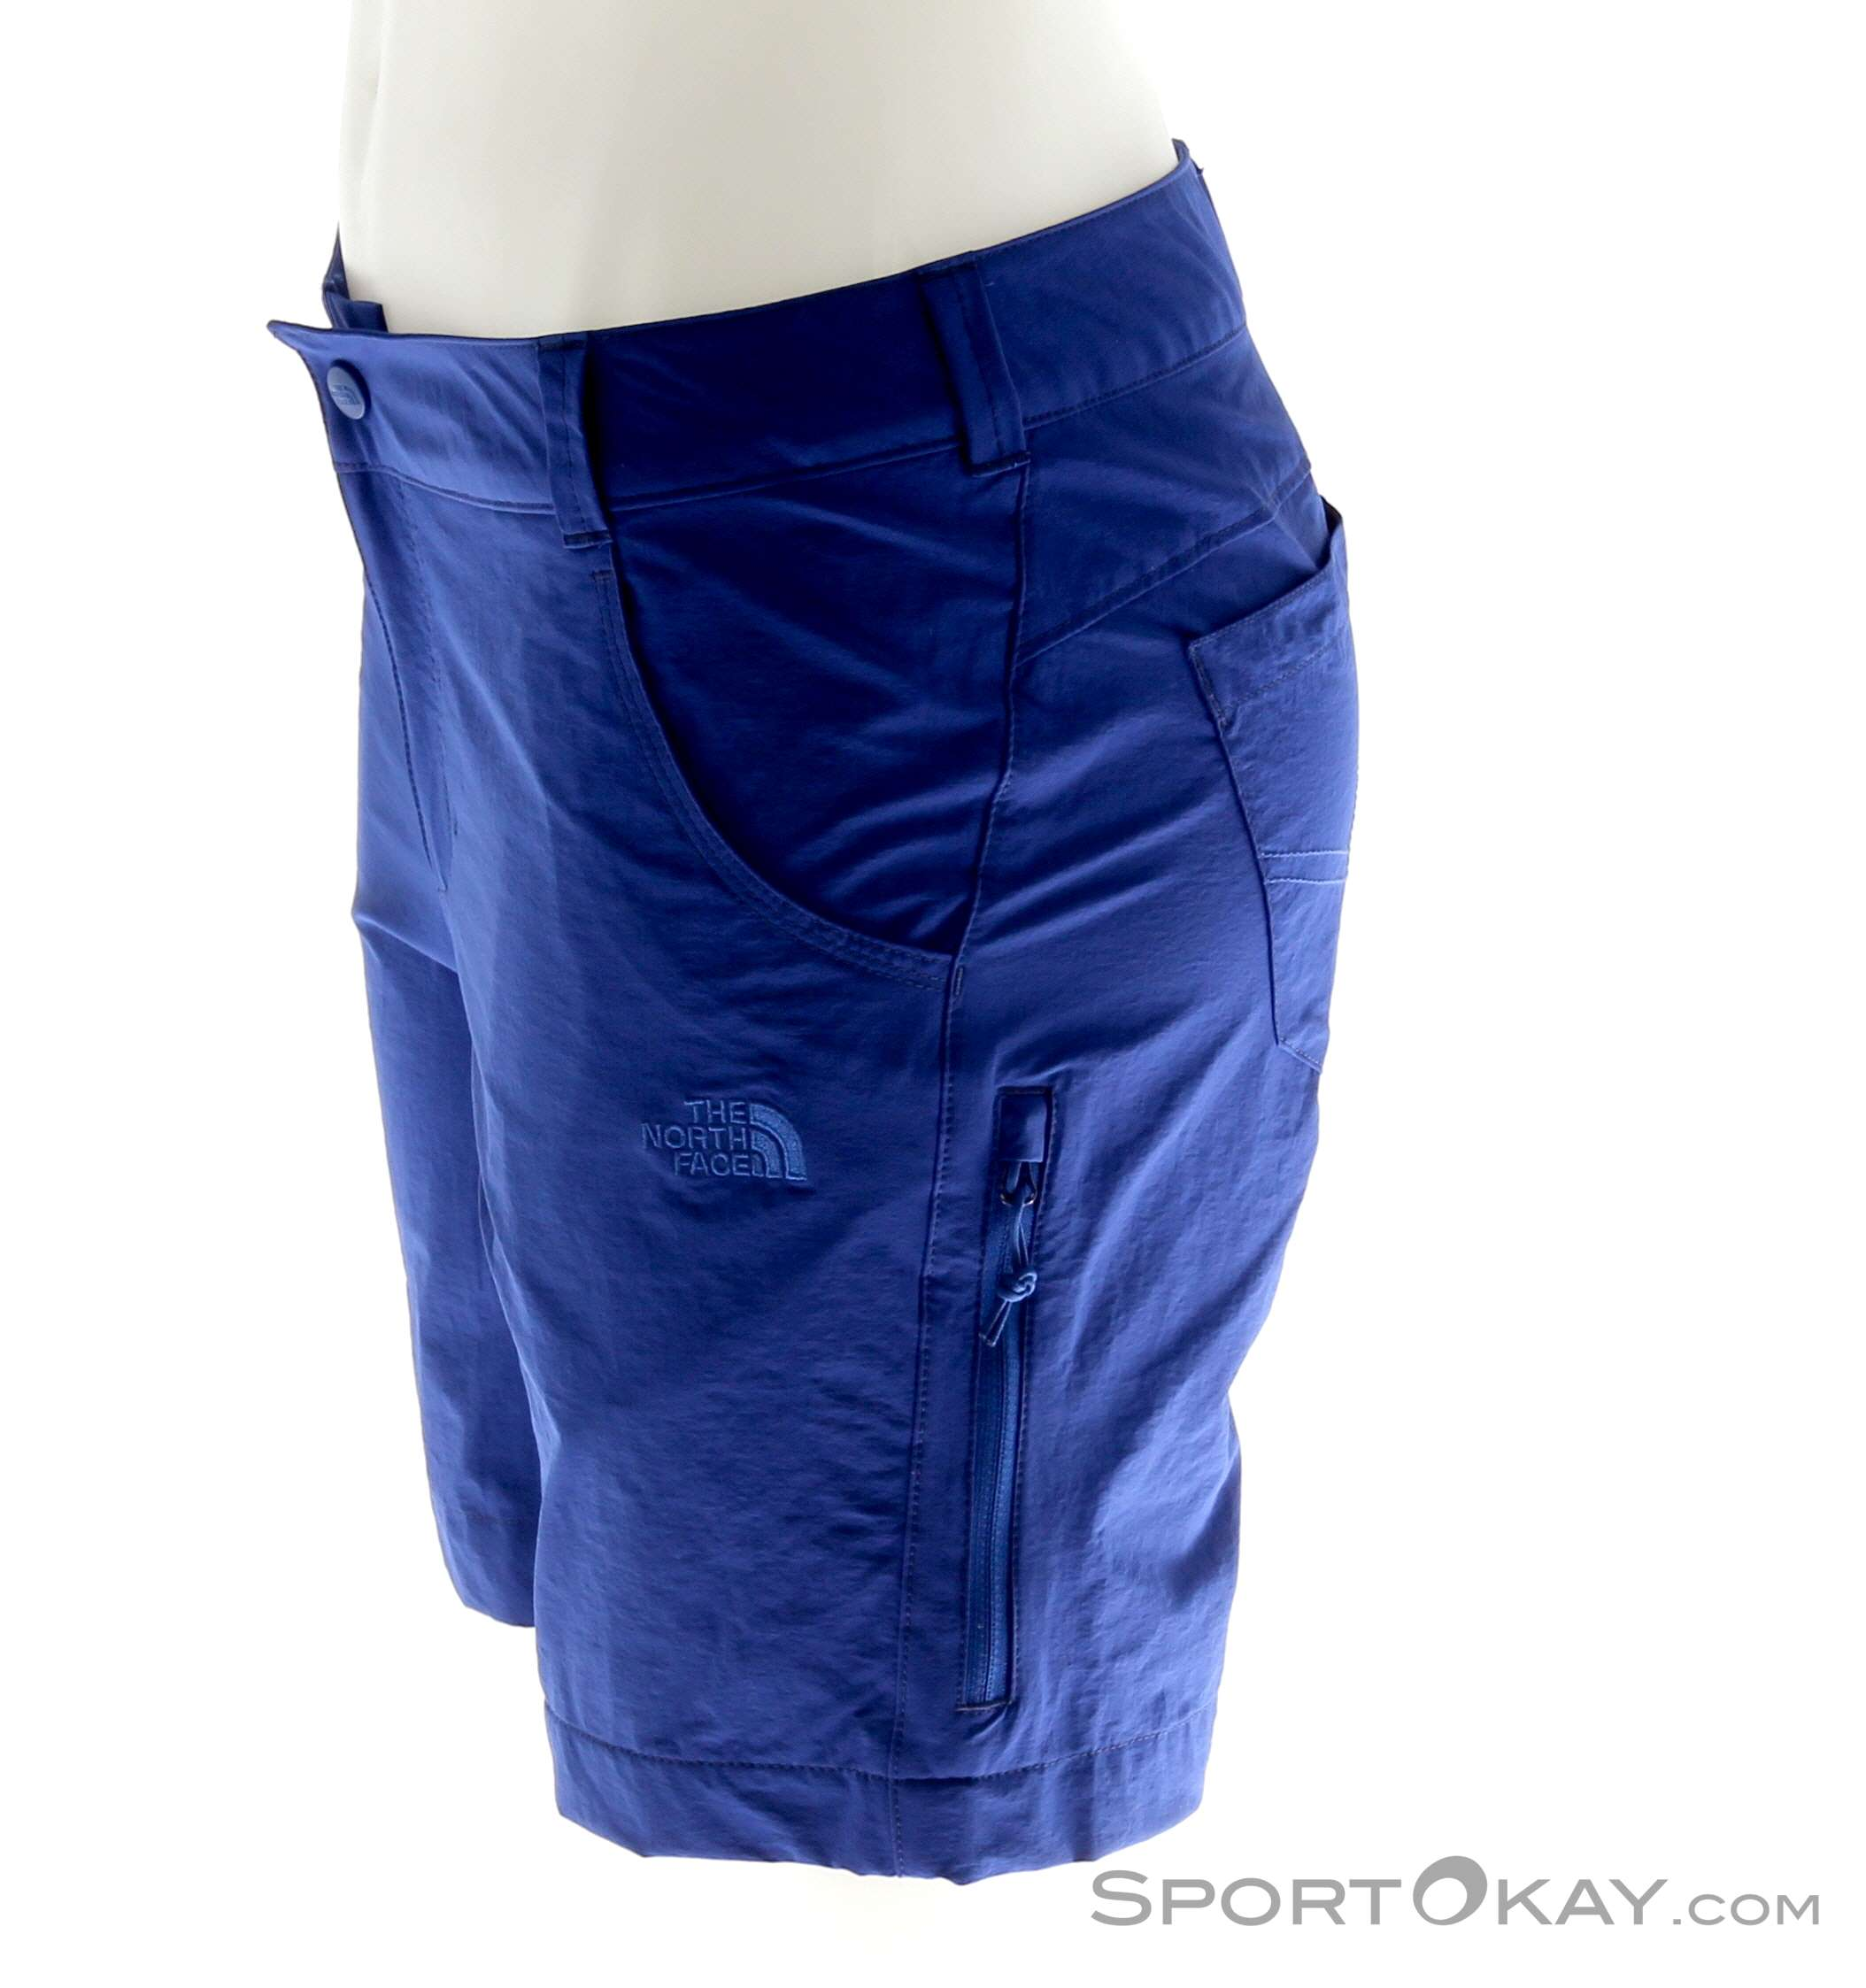 The North Face The North Face Exploration Short Damen Outdoorhose